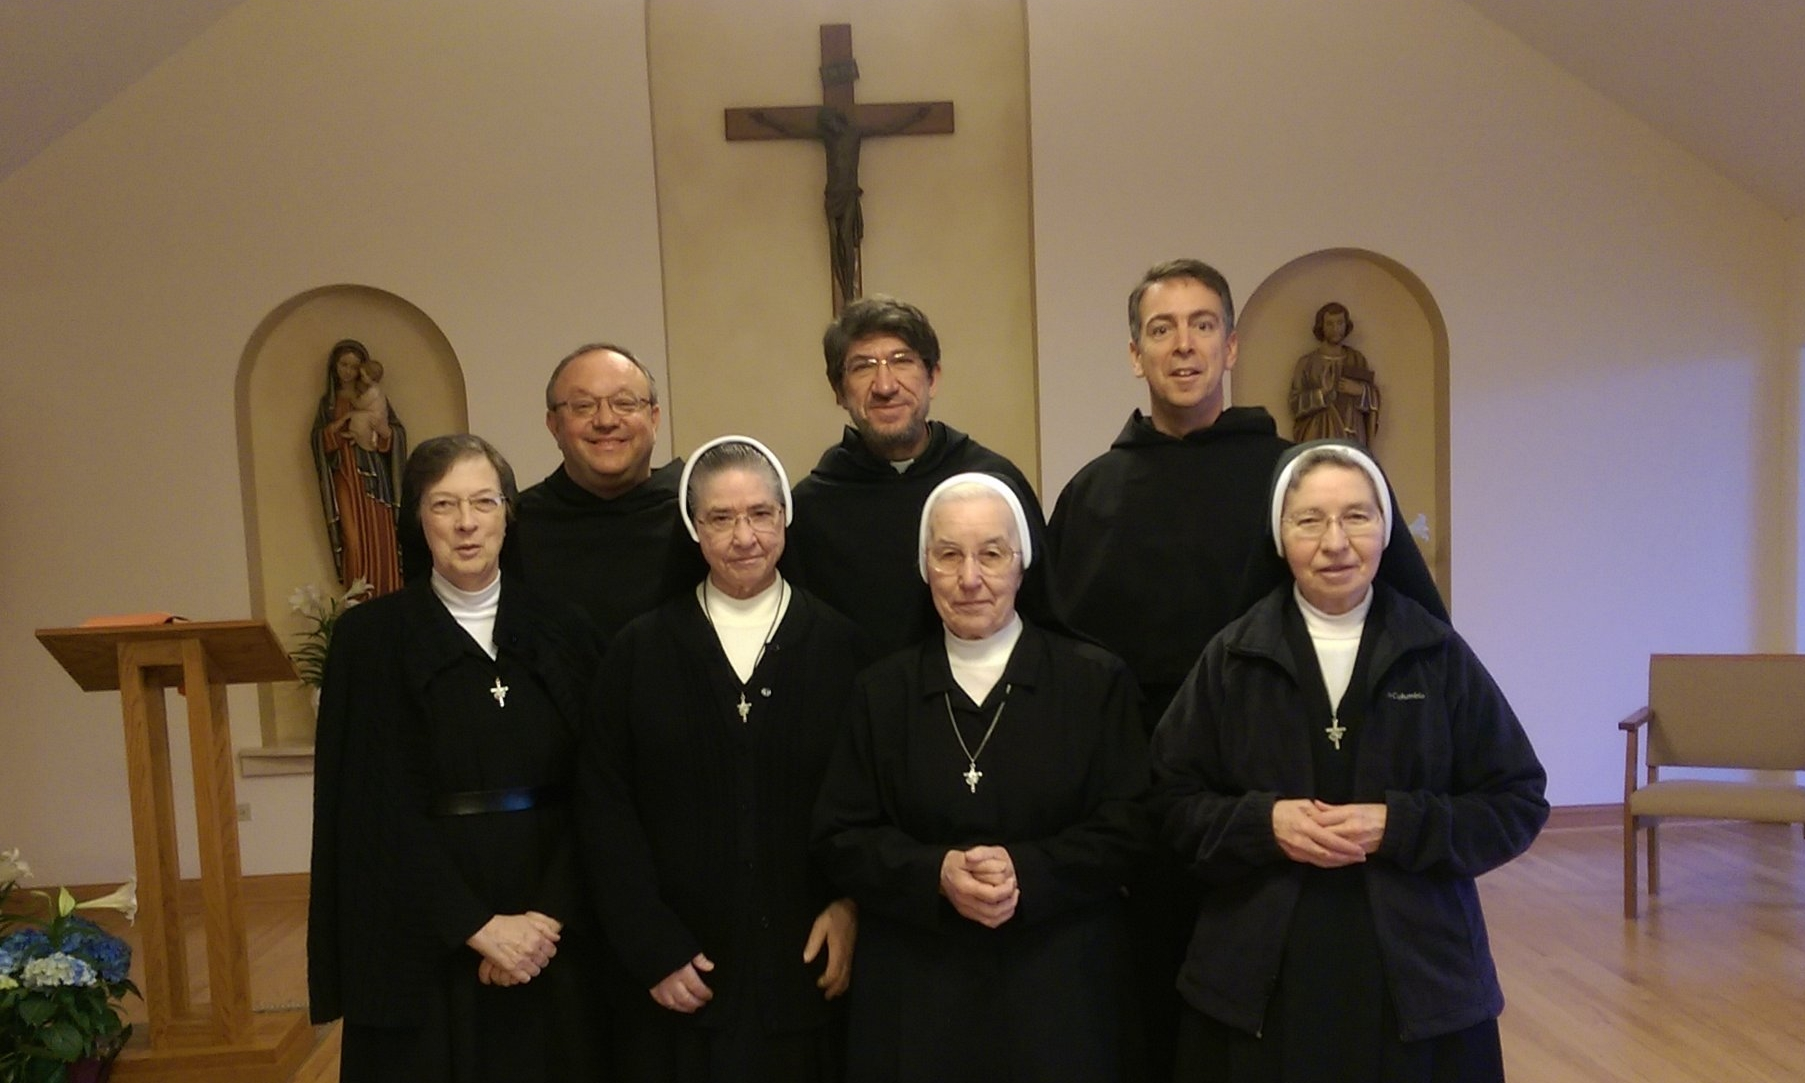 The Augustinian Nuns in New Lenox, Illinois, visited by the Prior General in April, 2015